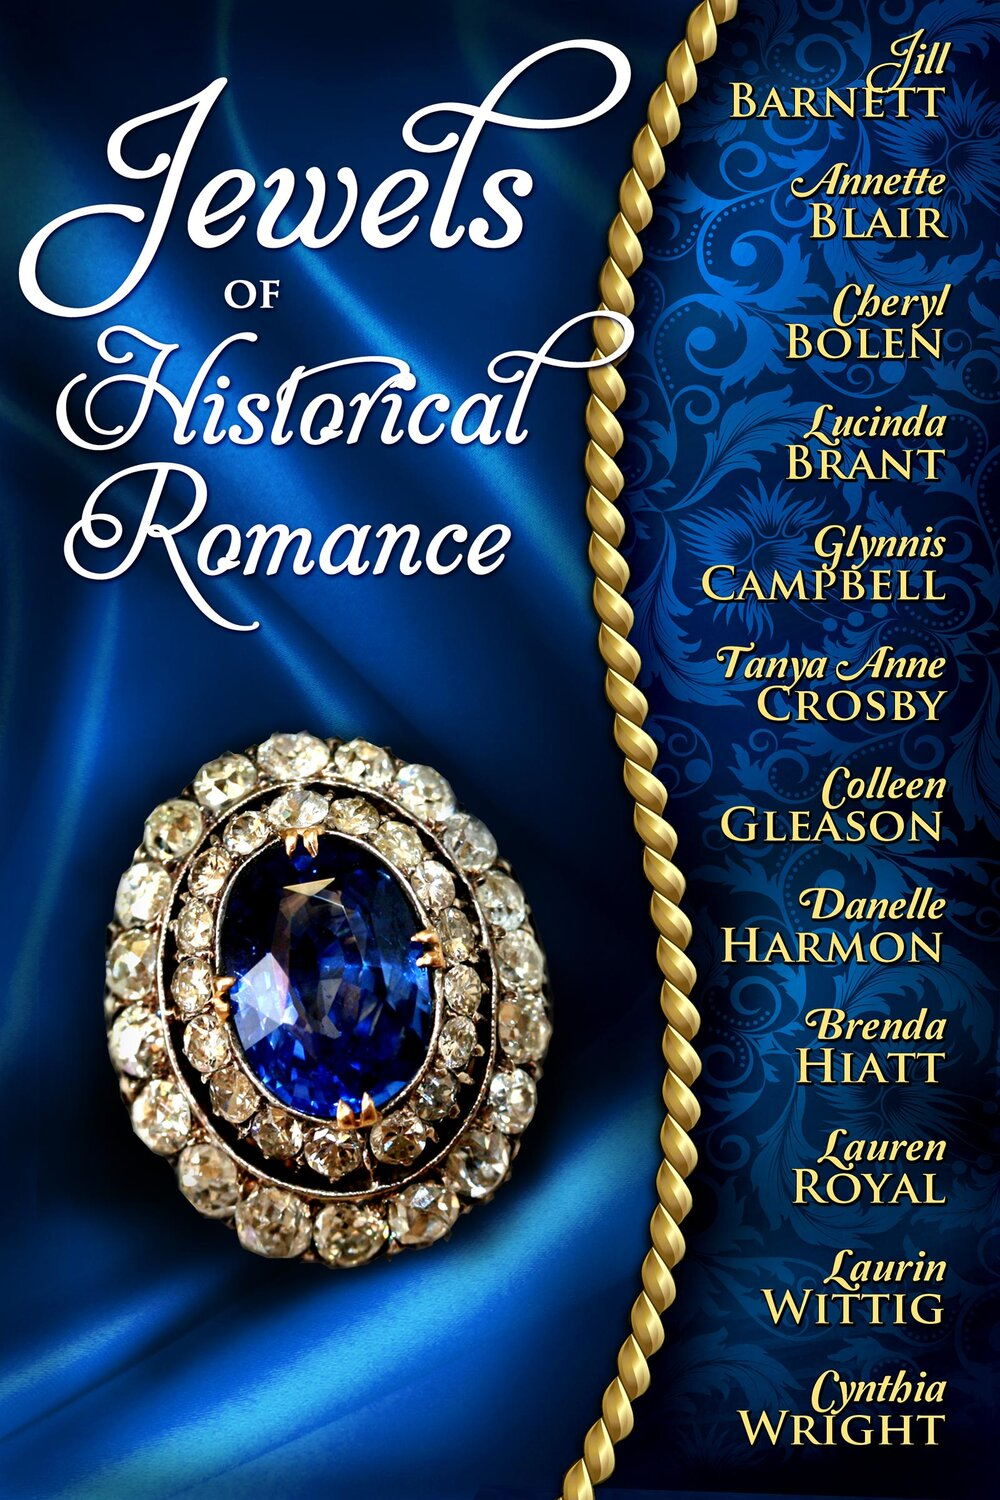 jewels-of-historical-romance.jpg